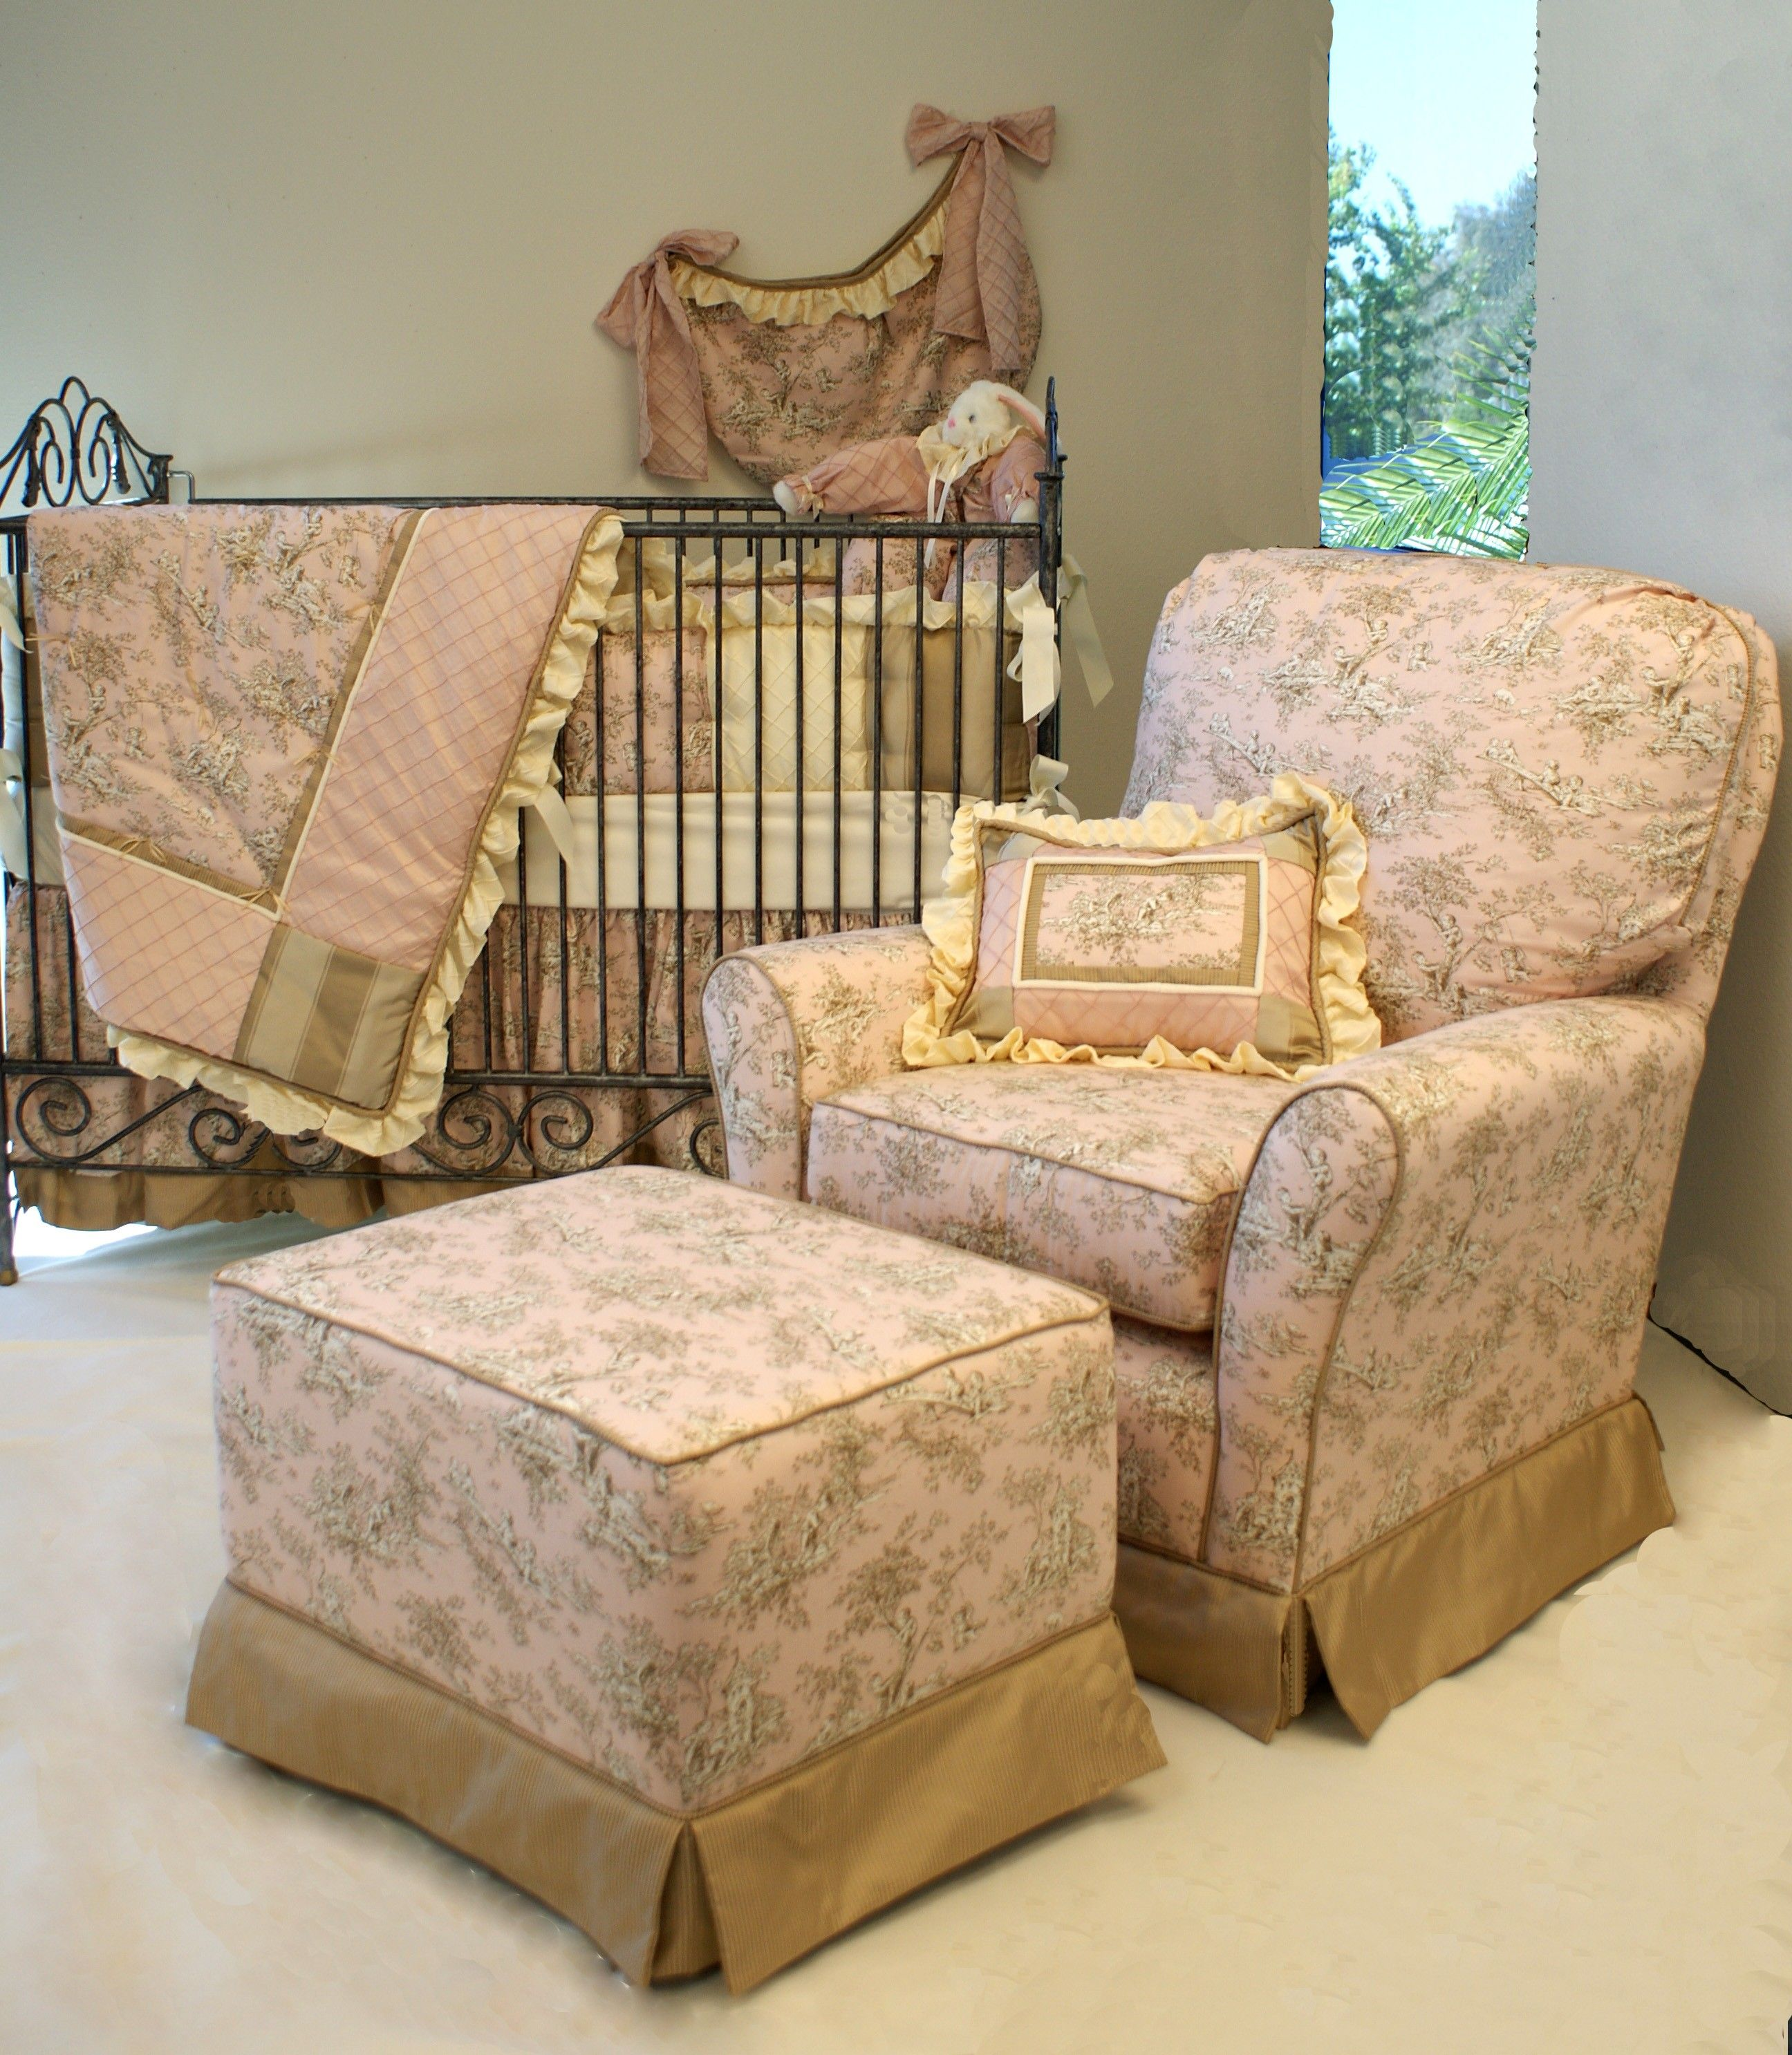 Little Castle Chair And Half Glider Best Baby High For Reference Cottage Adult Innocence